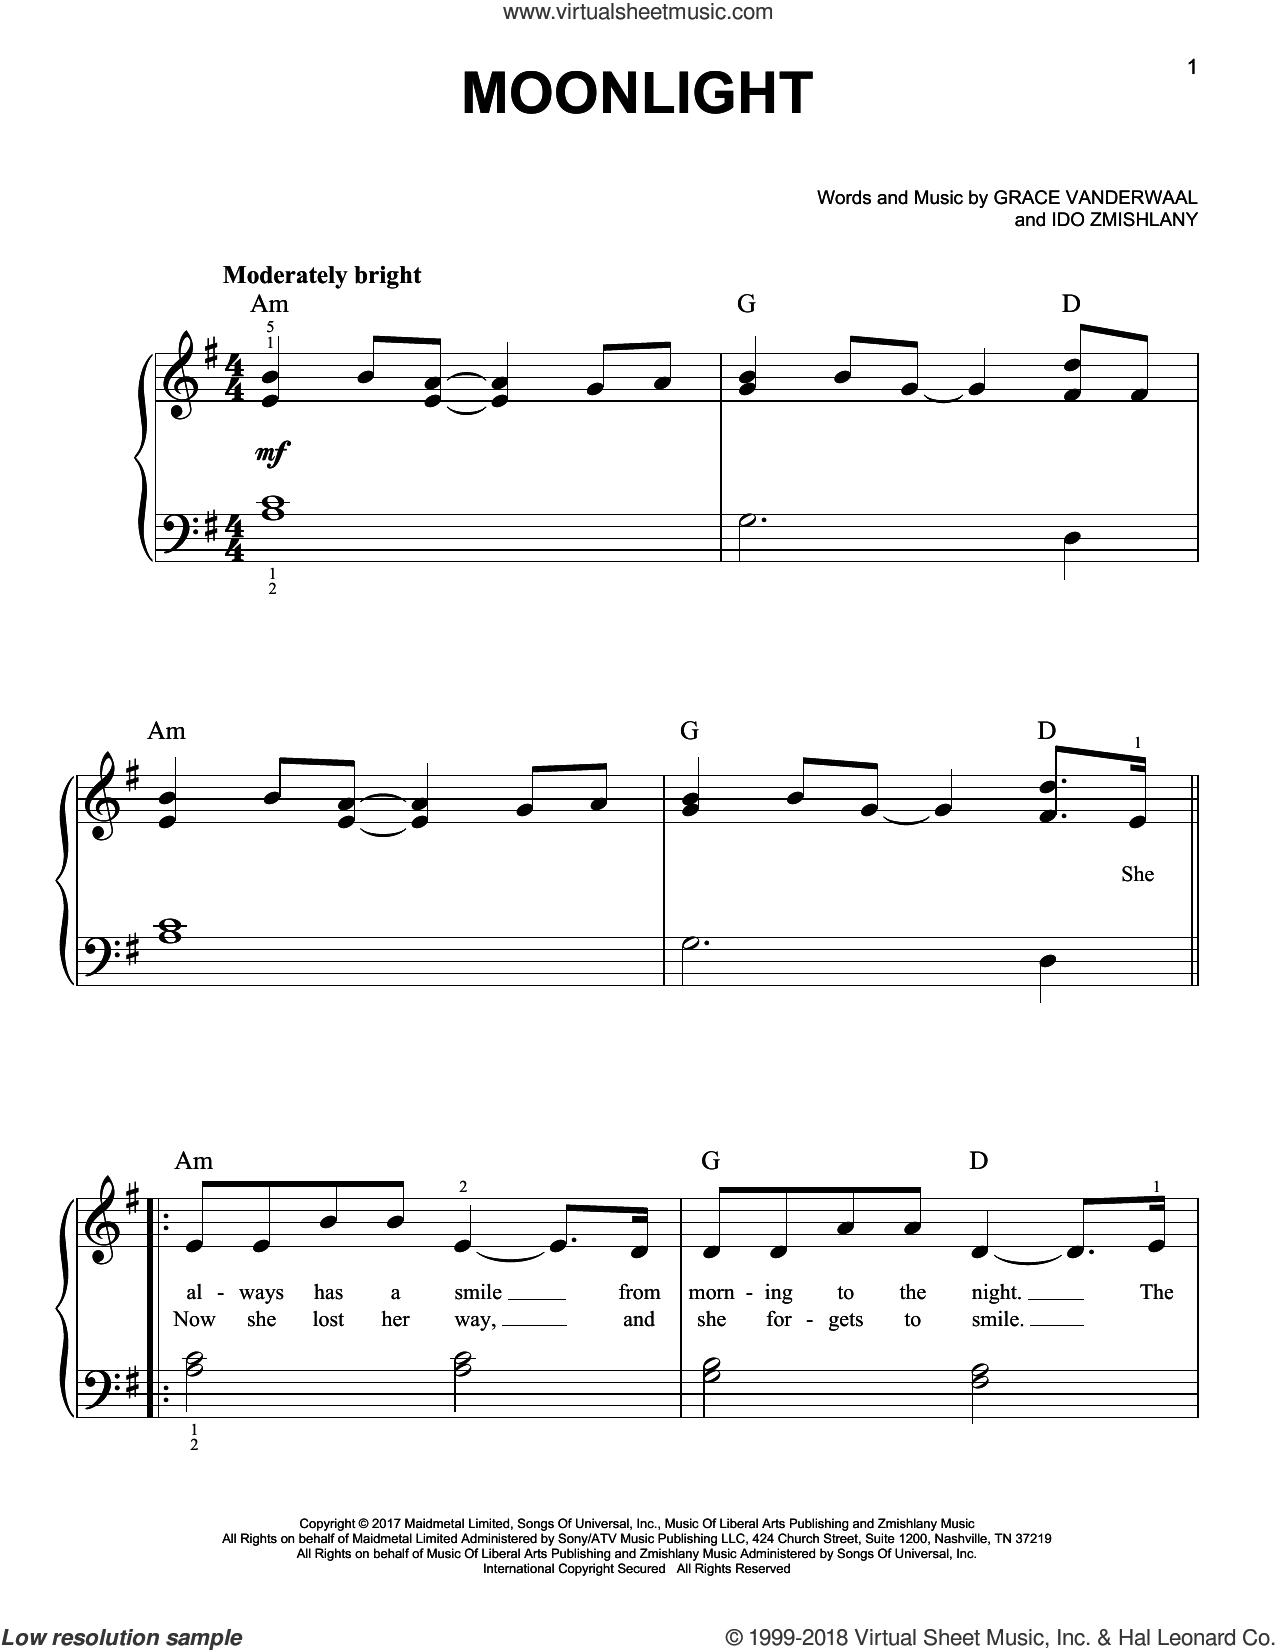 Moonlight sheet music for piano solo by Grace VanderWaal and Ido Zmishlany, easy skill level